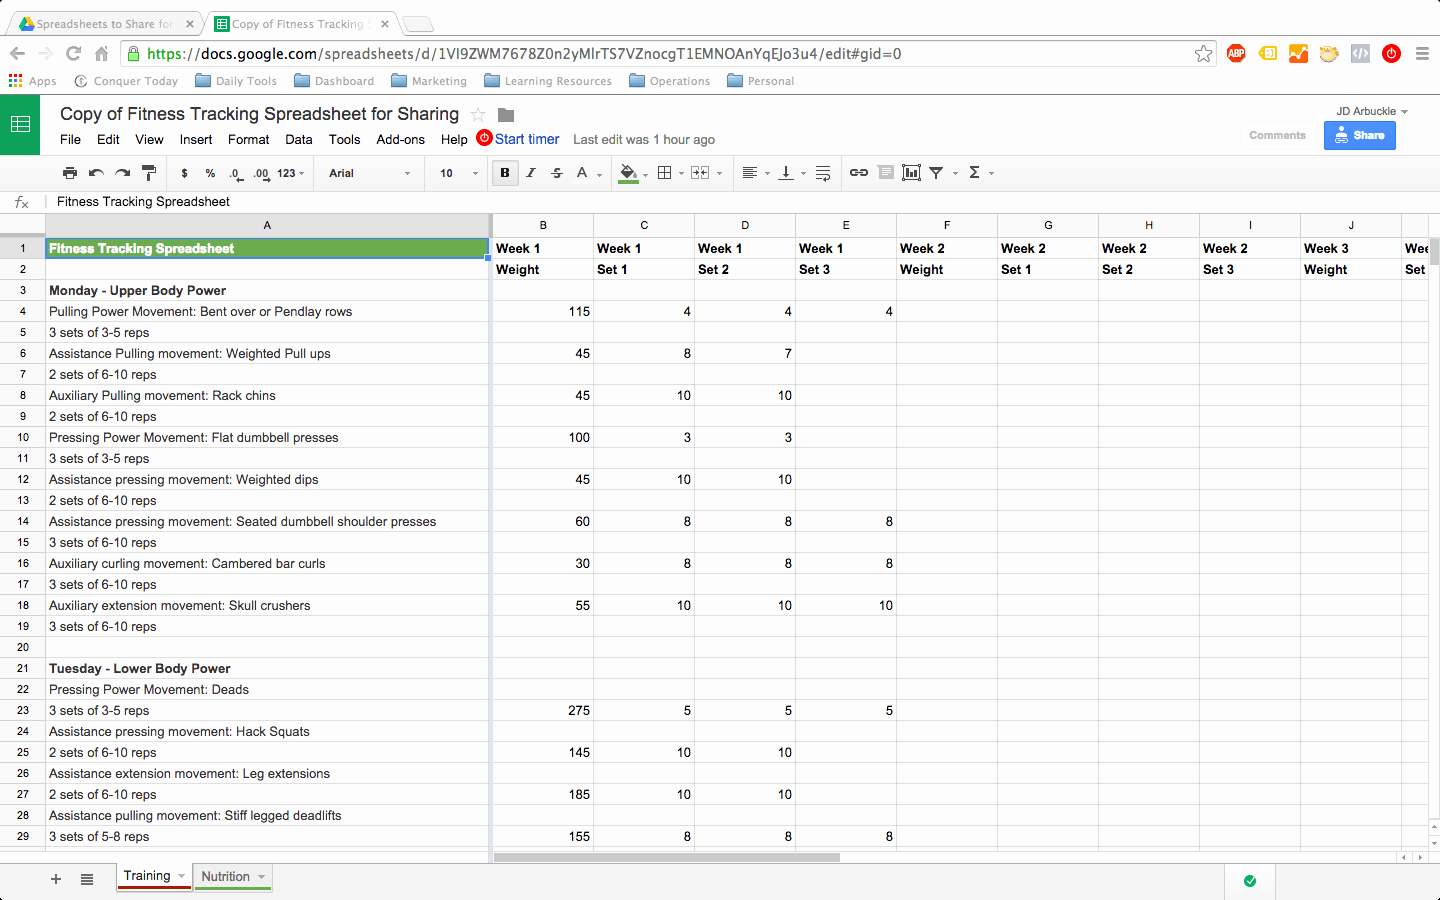 Project Management Spreadsheet Template Free Elegant Microsoft Excel Project Management Template Free